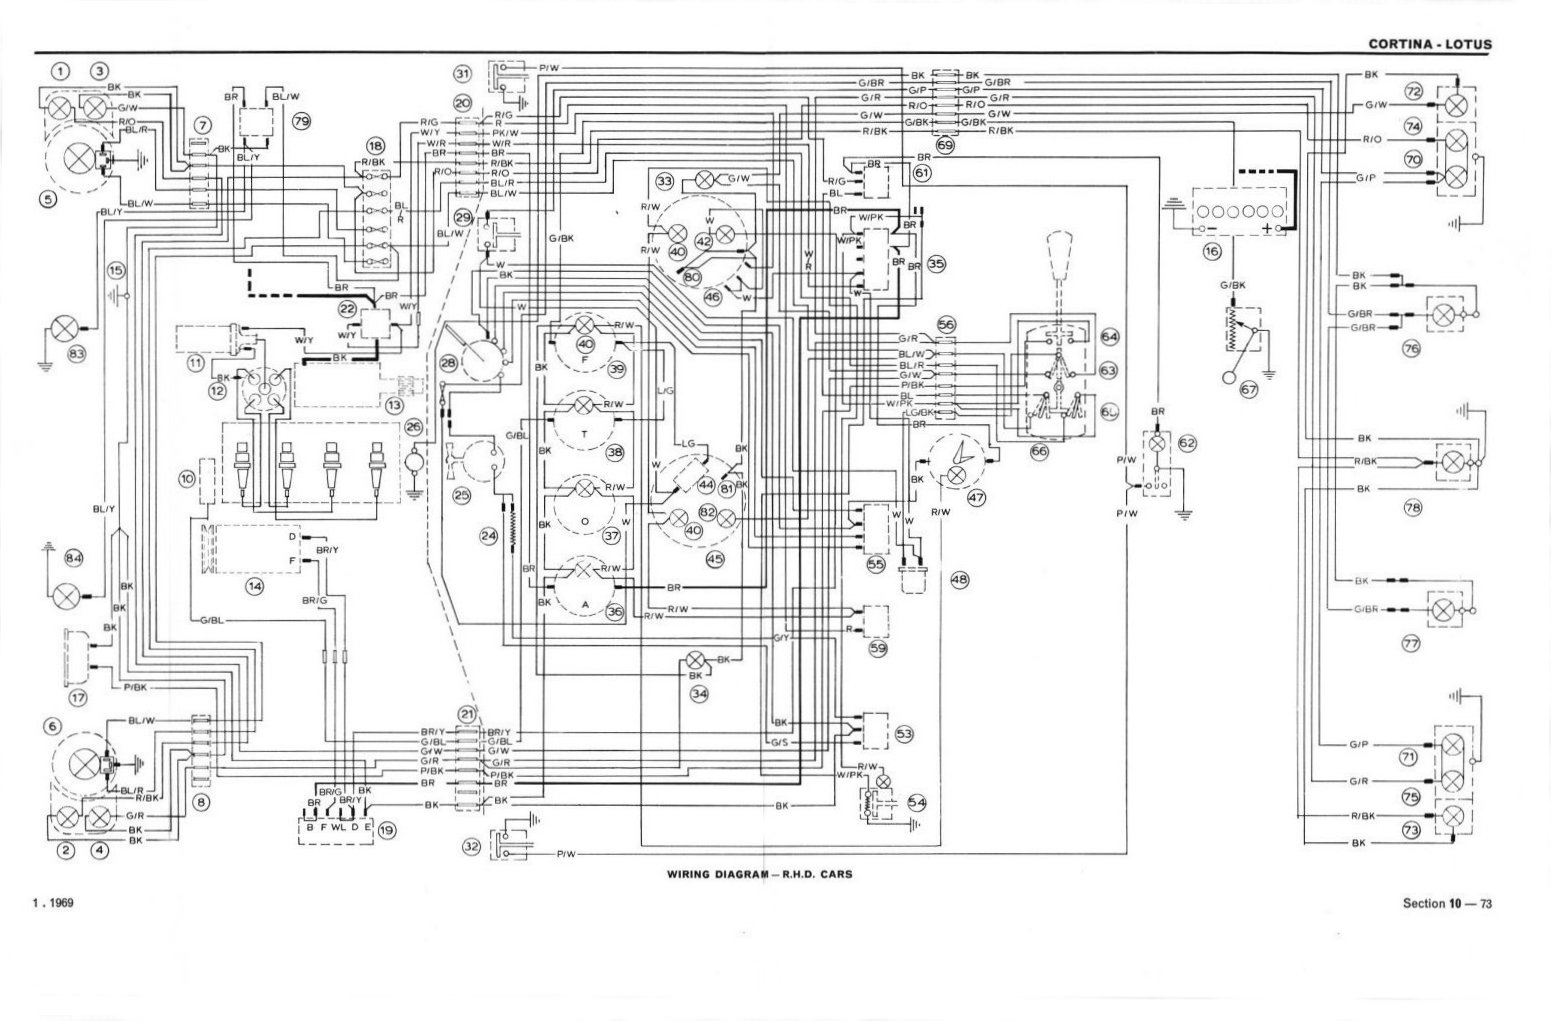 Wiring Diagram Jaguar Mk2 Schematics Diagrams Fender B Full A3 Fold Out Lotus Cortina Free Uk